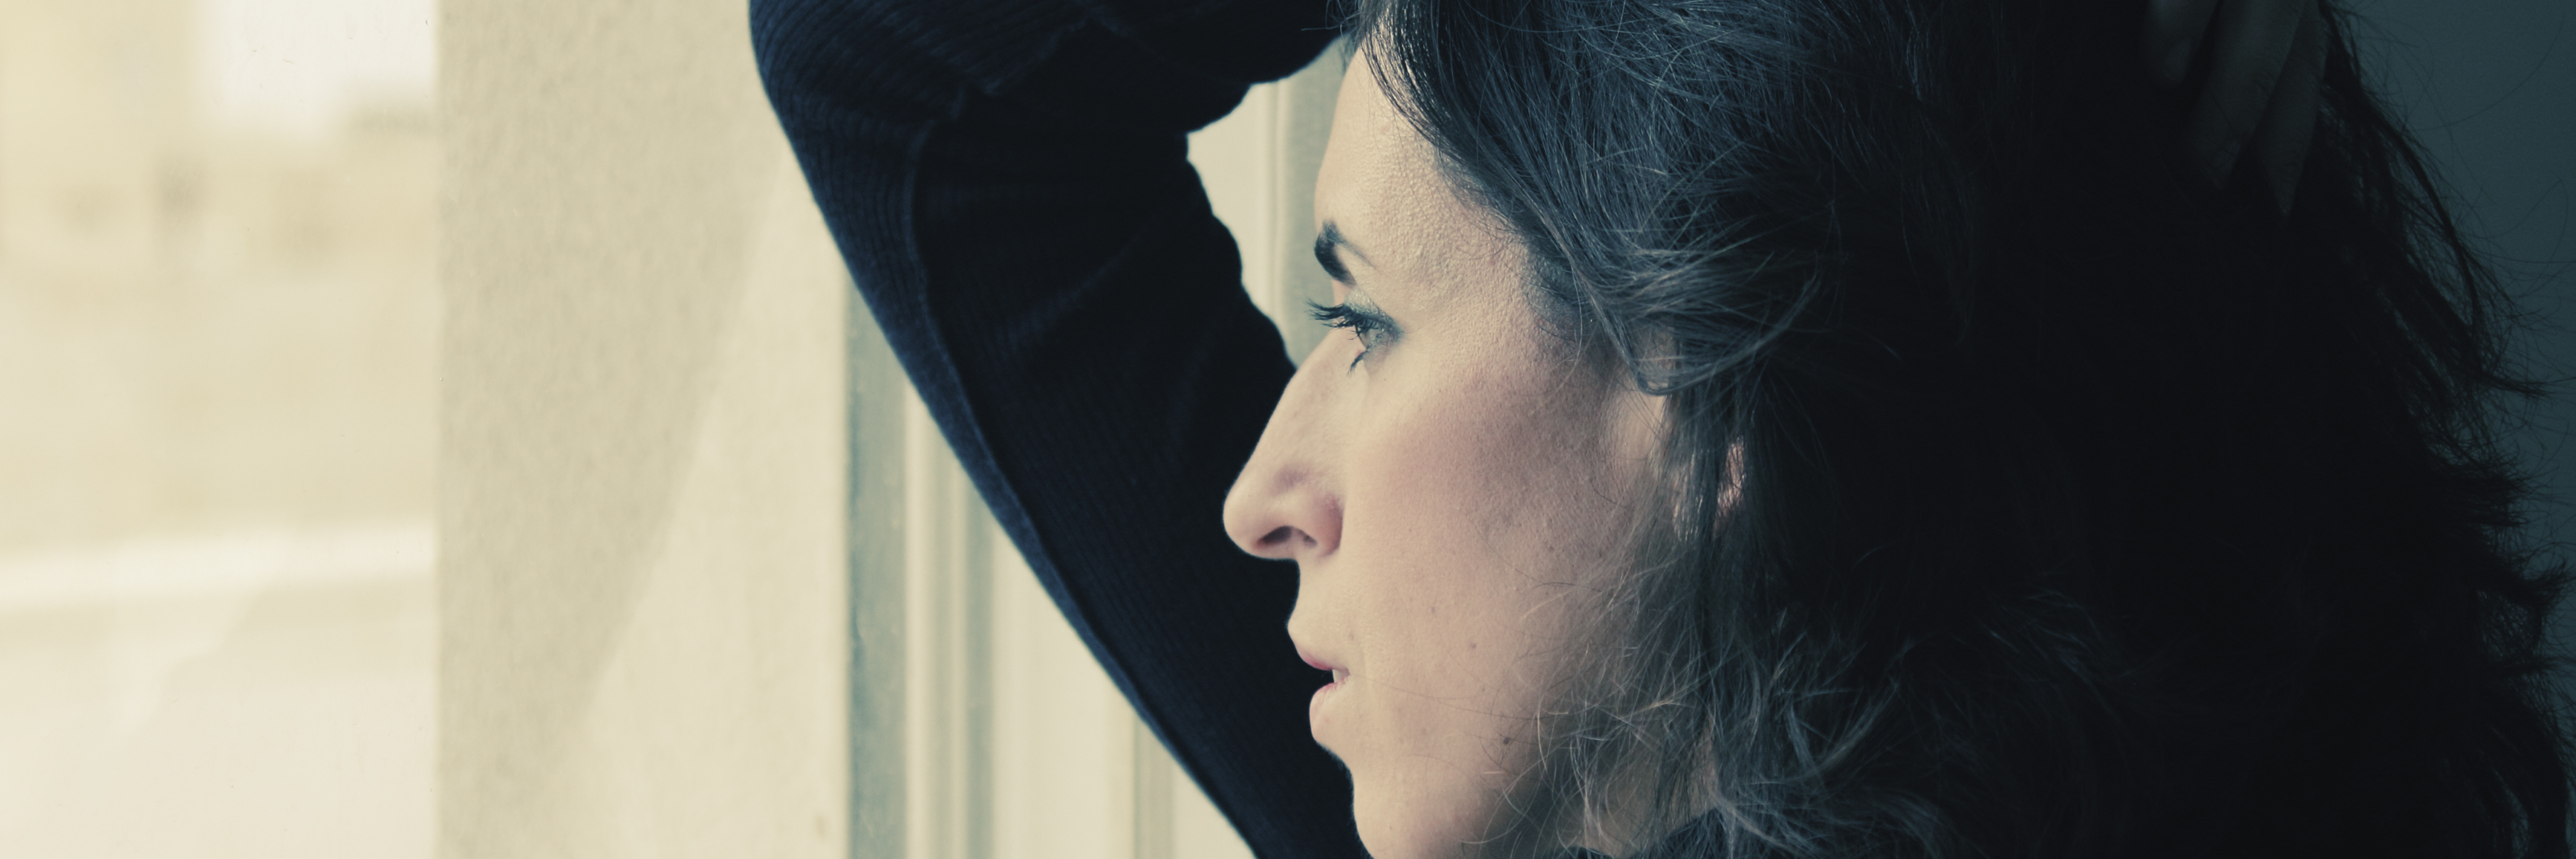 woman stands in front of the window